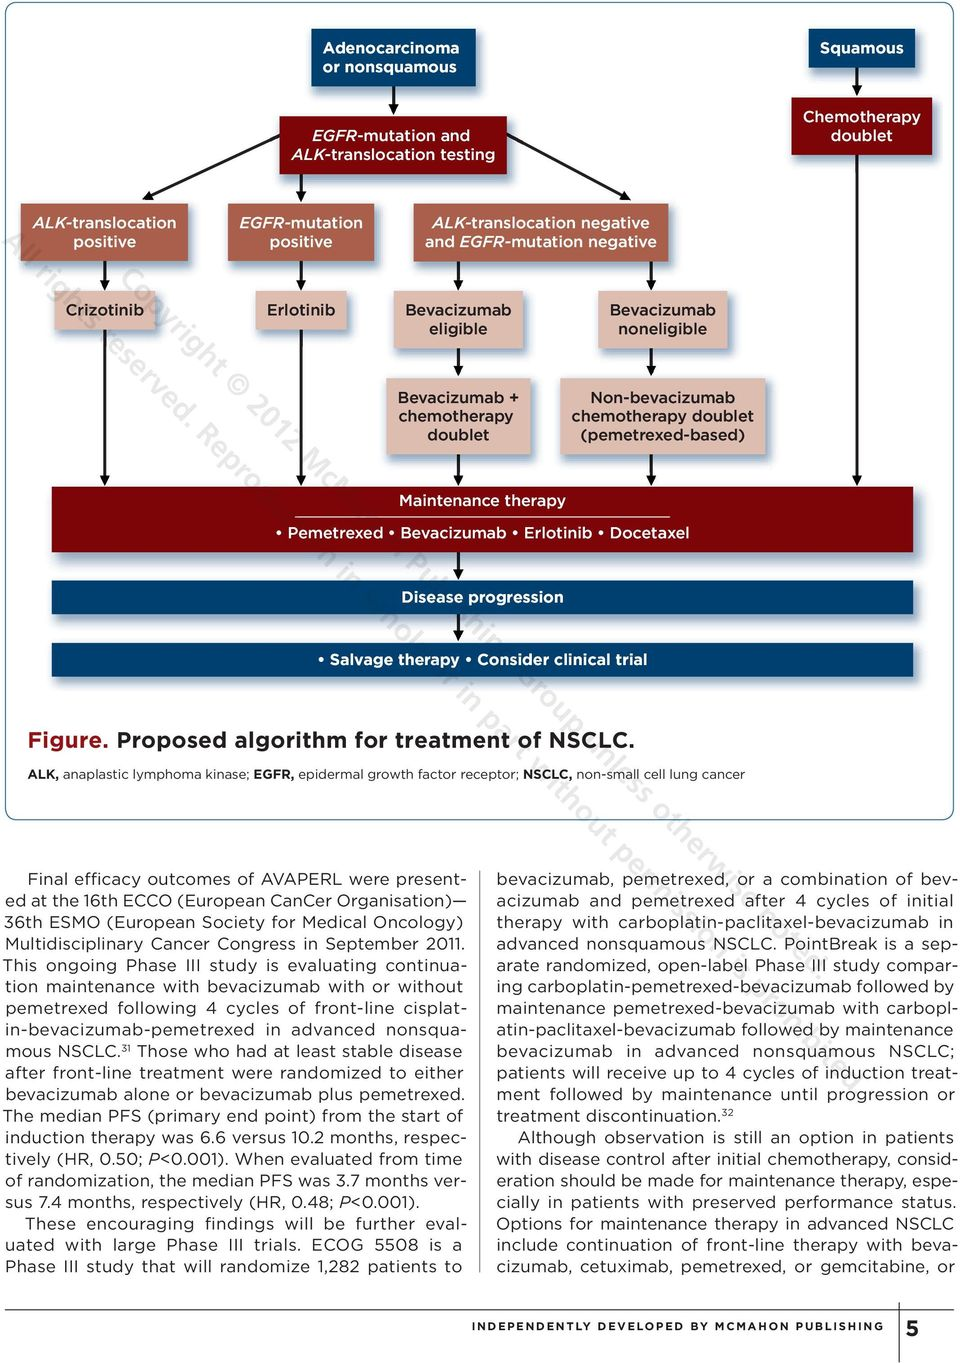 Bevacizumab Erlotinib Docetaxel Disease progression Salvage therapy Consider clinical trial Figure. Proposed algorithm for treatment of NSCLC.